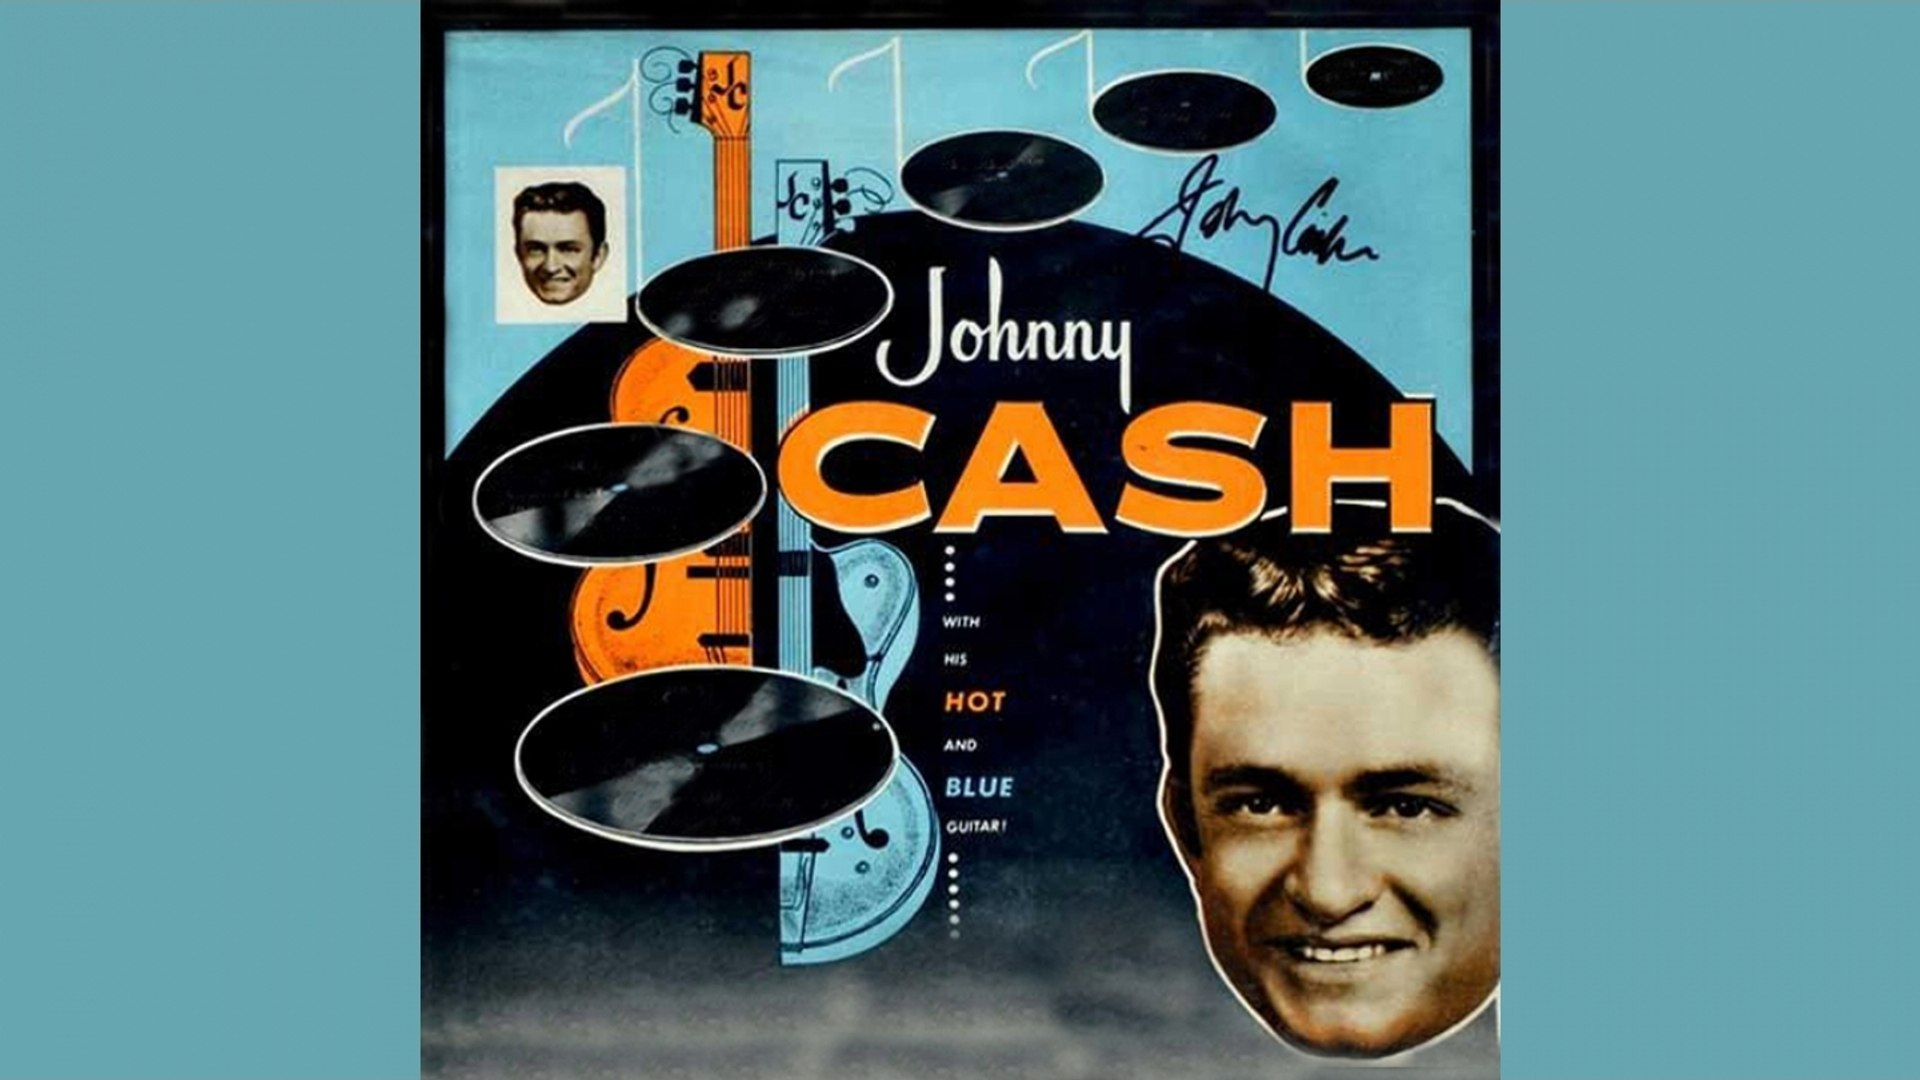 Johnny Cash - With His Hot And Blue Guitar - Full Album